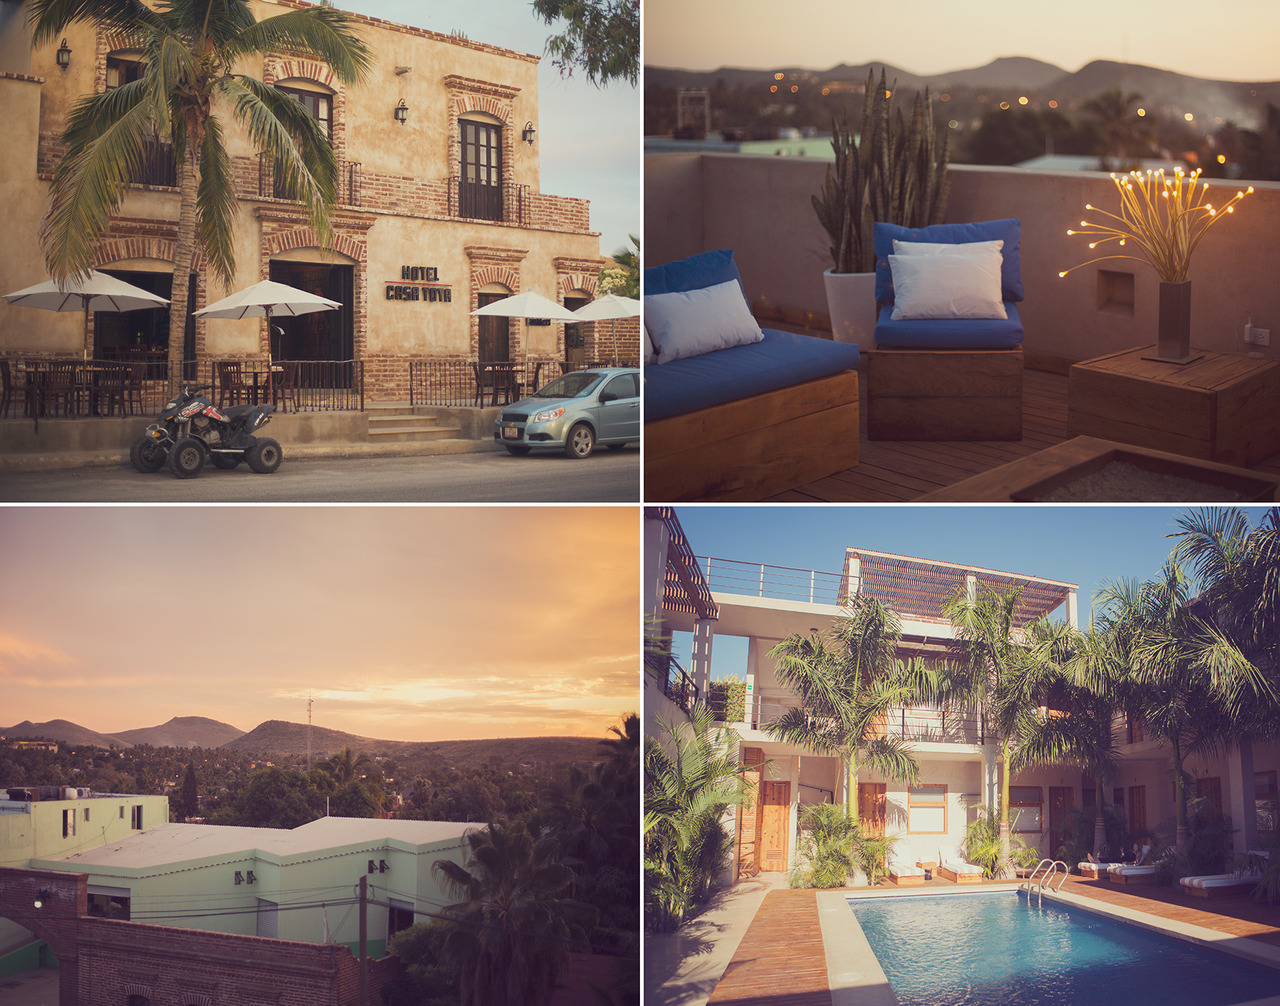 Casa Tota The prettiest, nicest, and best place to stay in Todos Santos Mexico